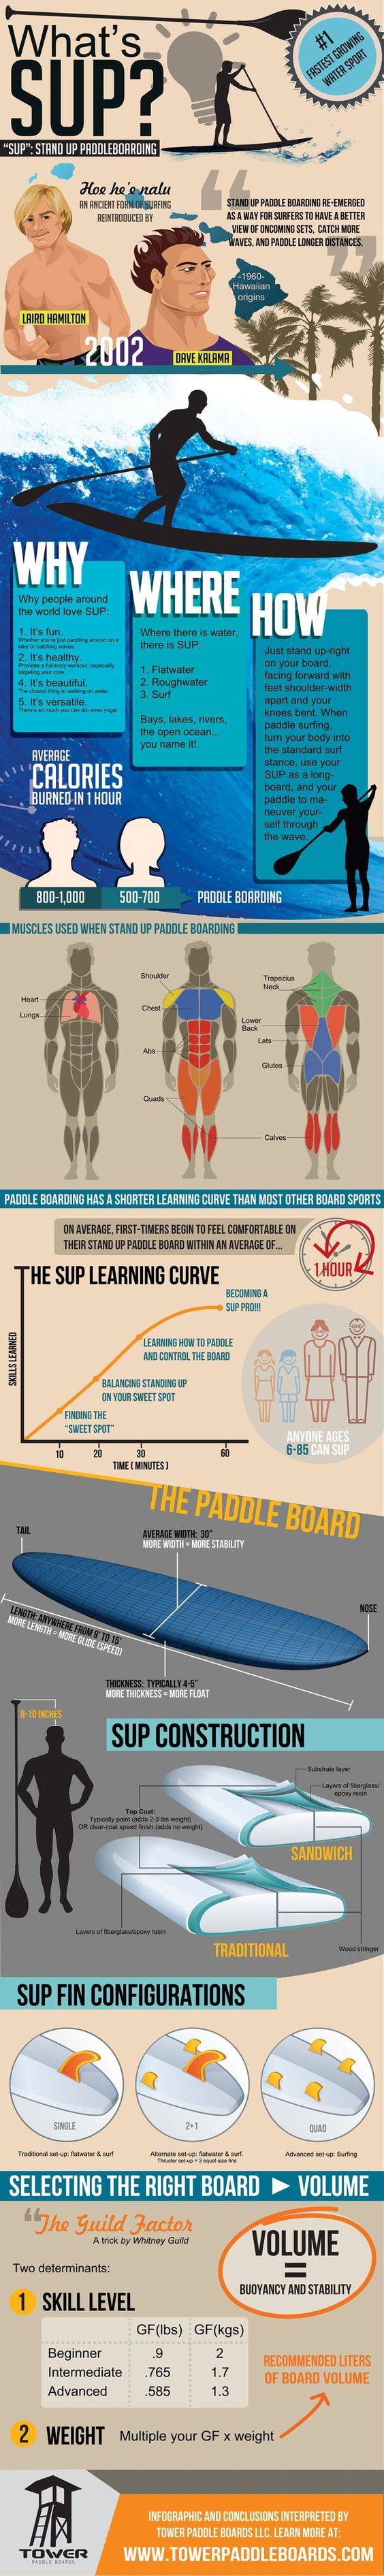 Stand Up Paddleboarding infographic